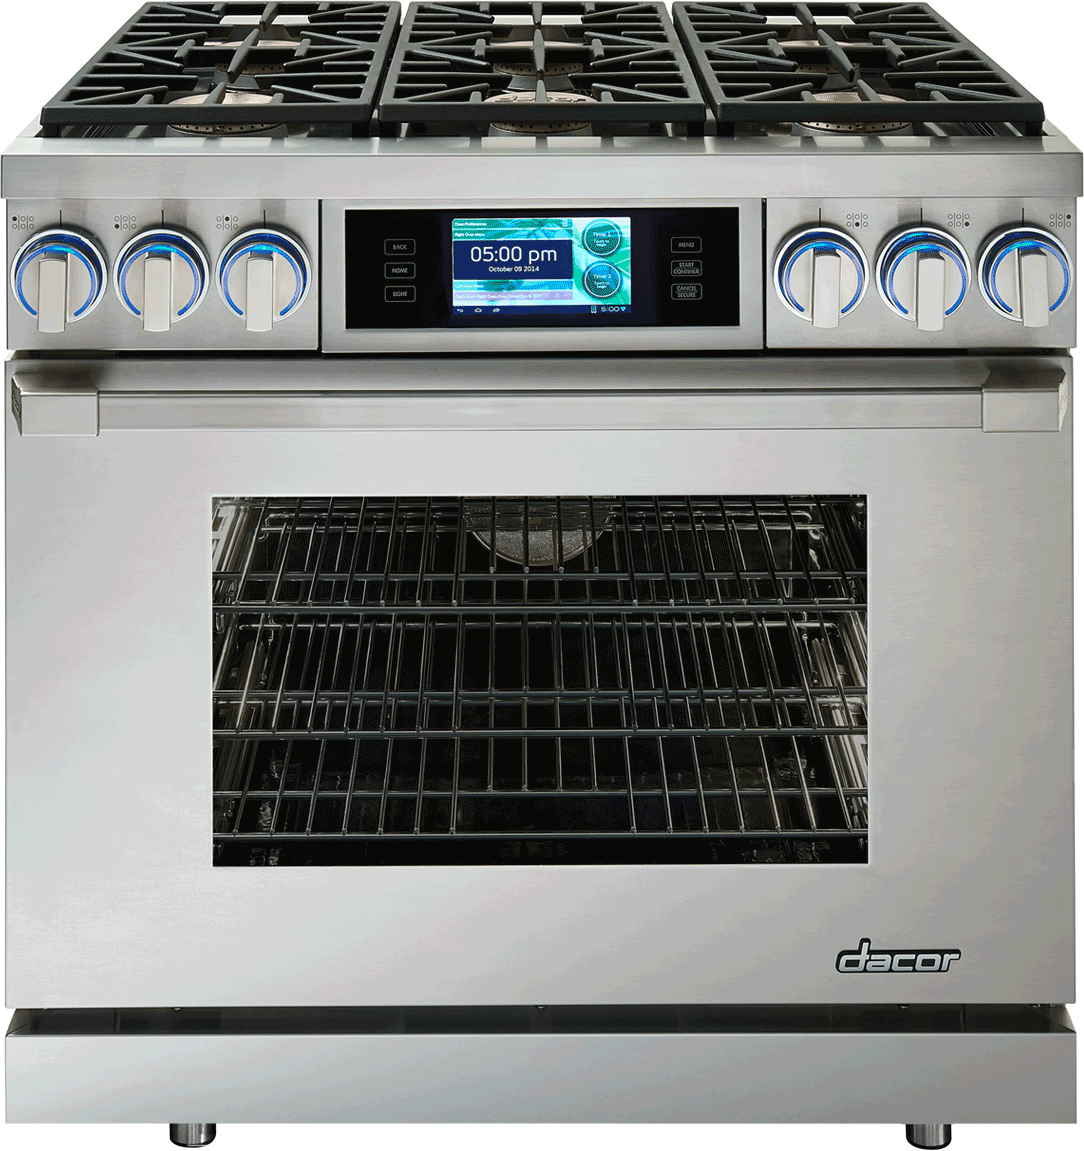 Dacor Dyrp36dslph 36 Inch Slide In Dual Fuel Range Oven With